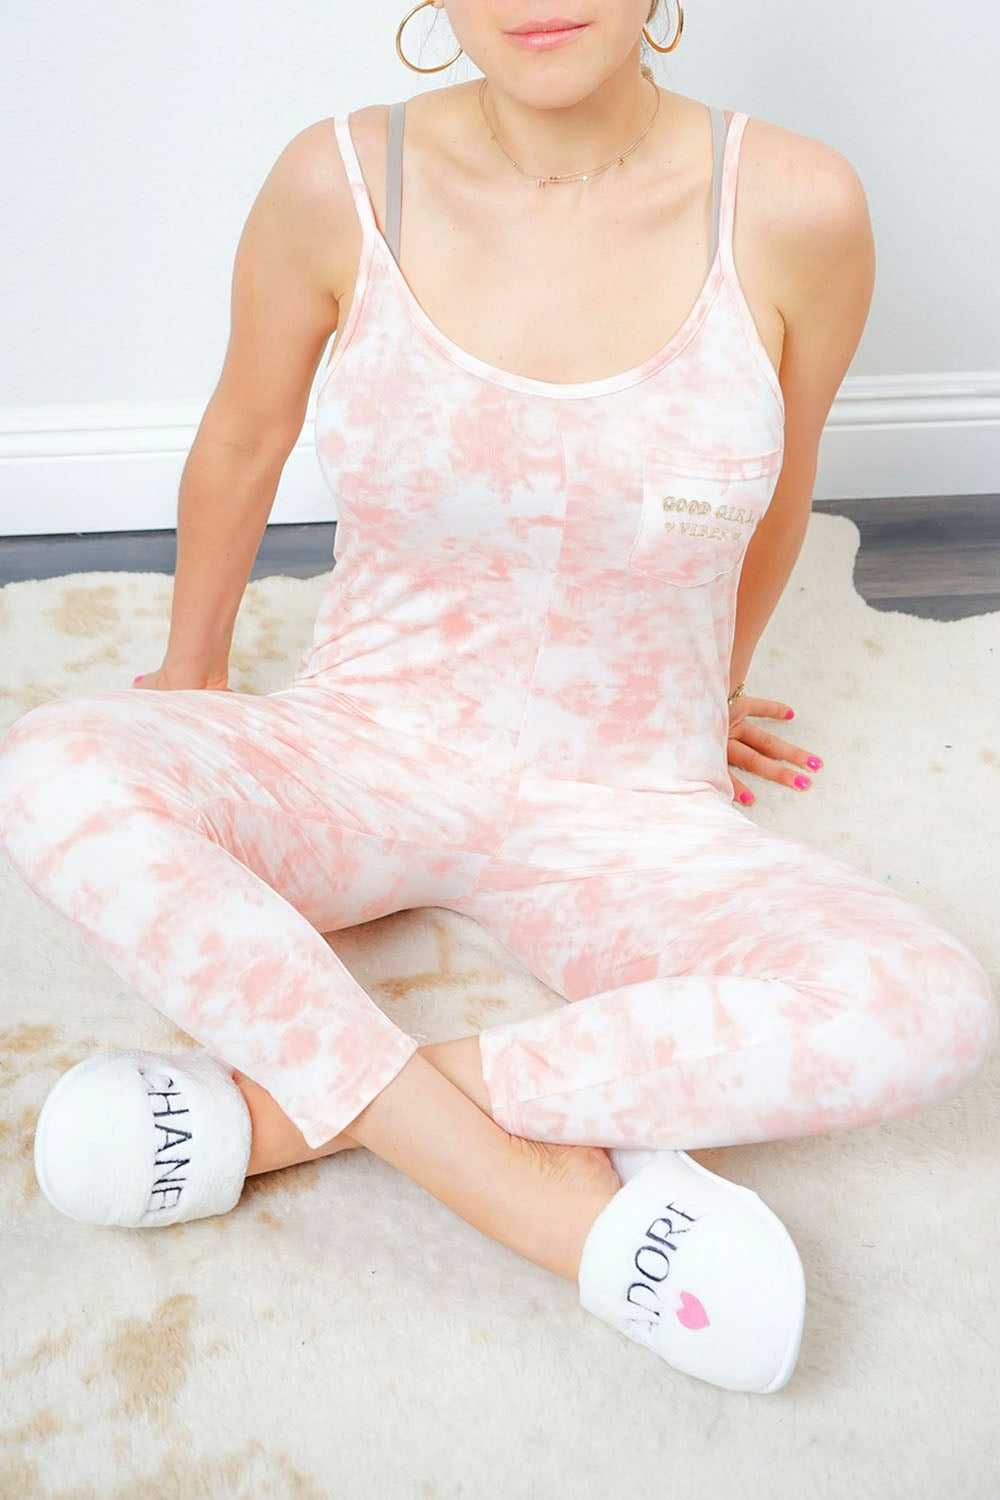 JUMPSUIT TIE DYE  - Good Girl Vibes